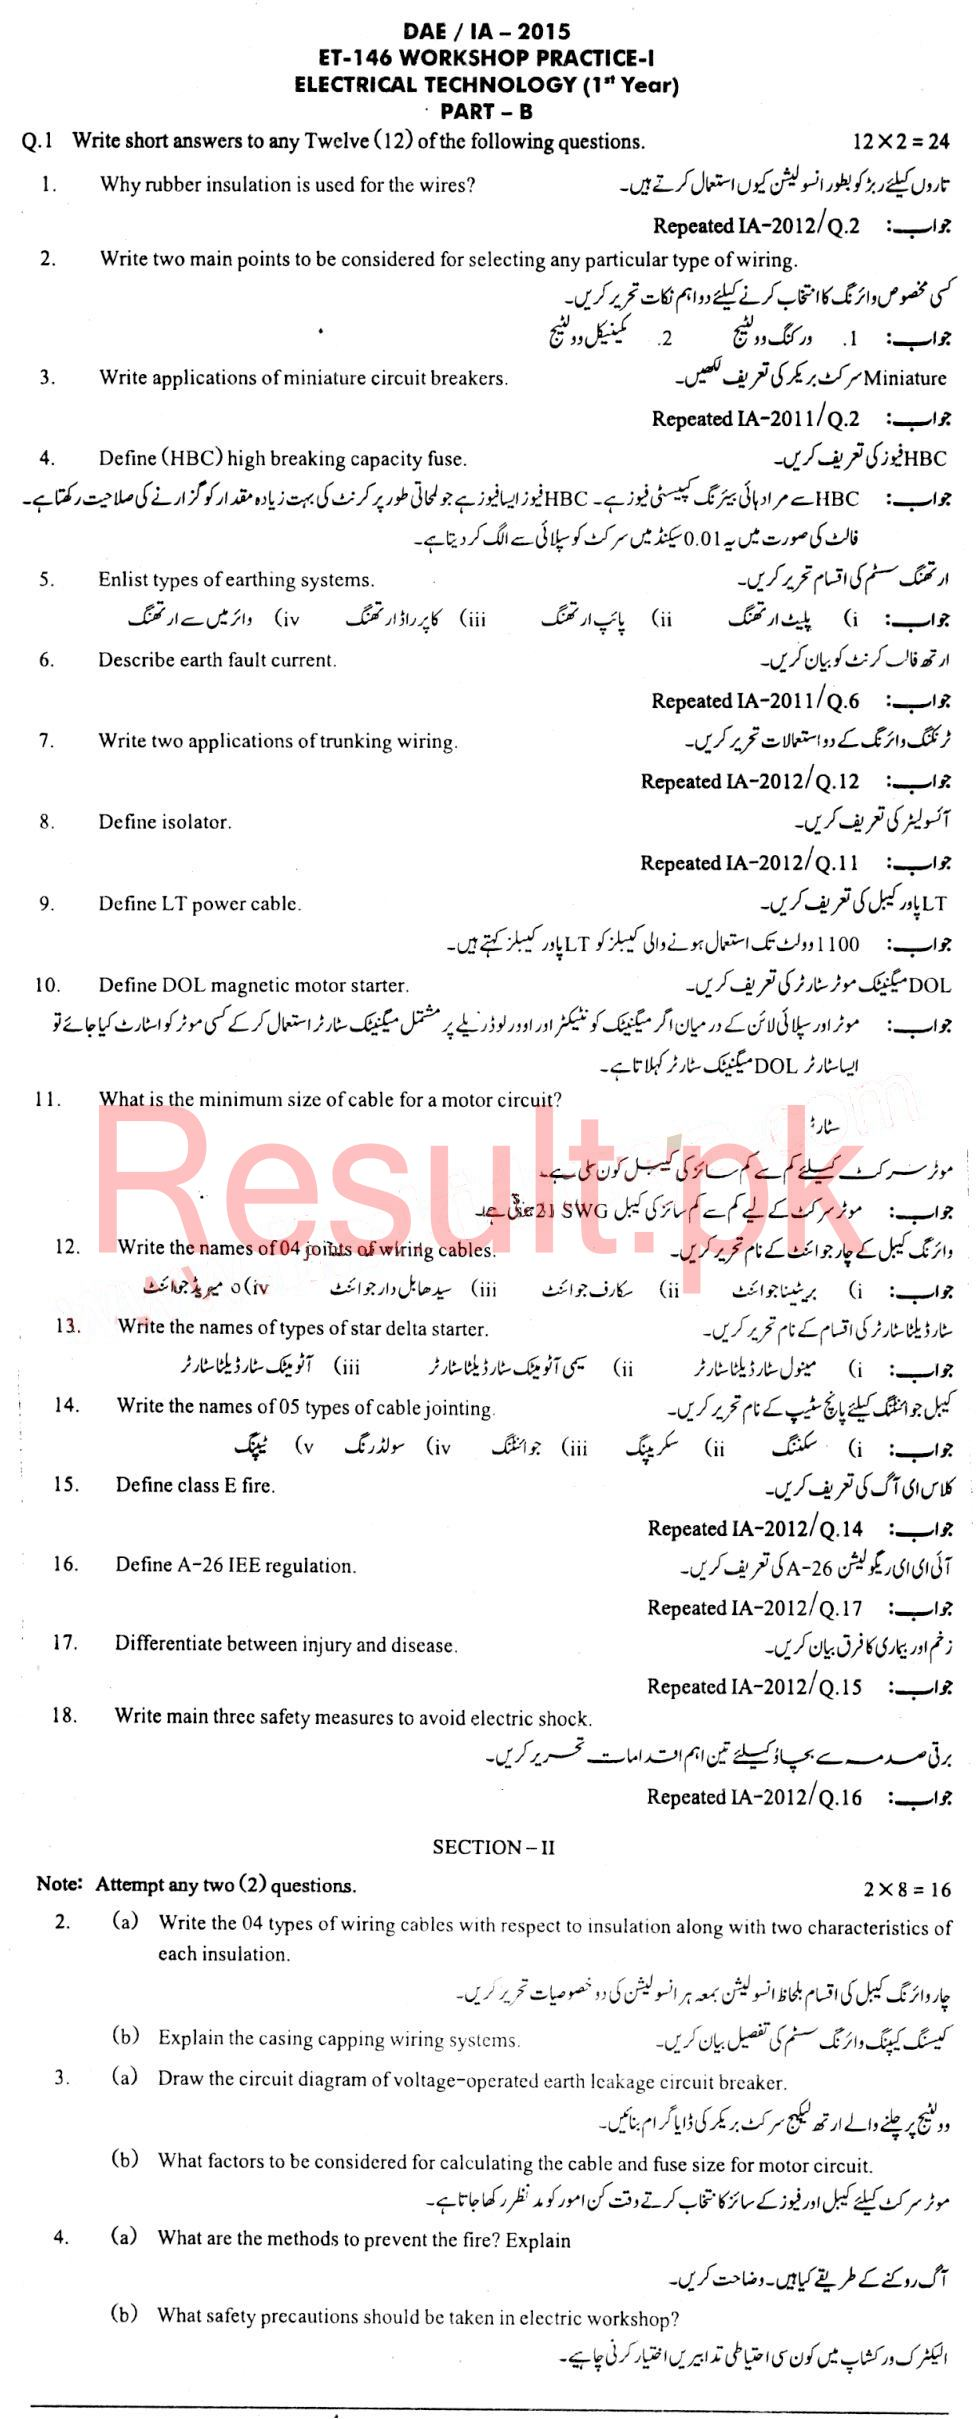 Punjab Board Of Technical Education Lahore Past Papers 2018 2017 Circuit Diagram Practice Pbte Dae Electrical 1st Year Workshop B Paper 2015